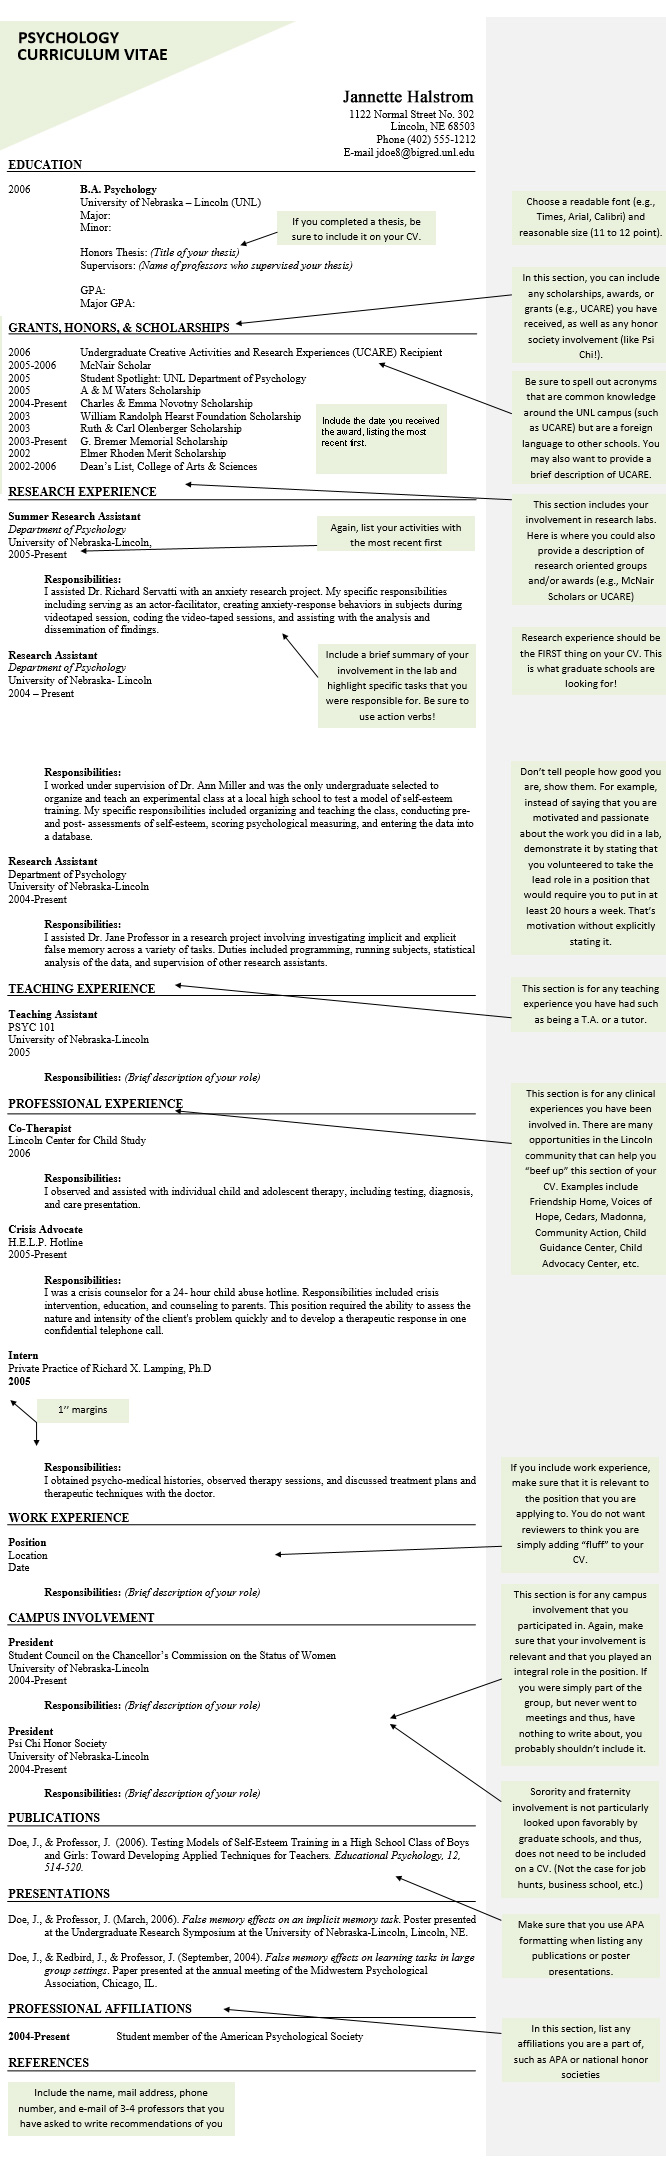 career resume checklist customer service resume example career resume checklist career advice tips for job interviews resume career effective cvs and resumes for